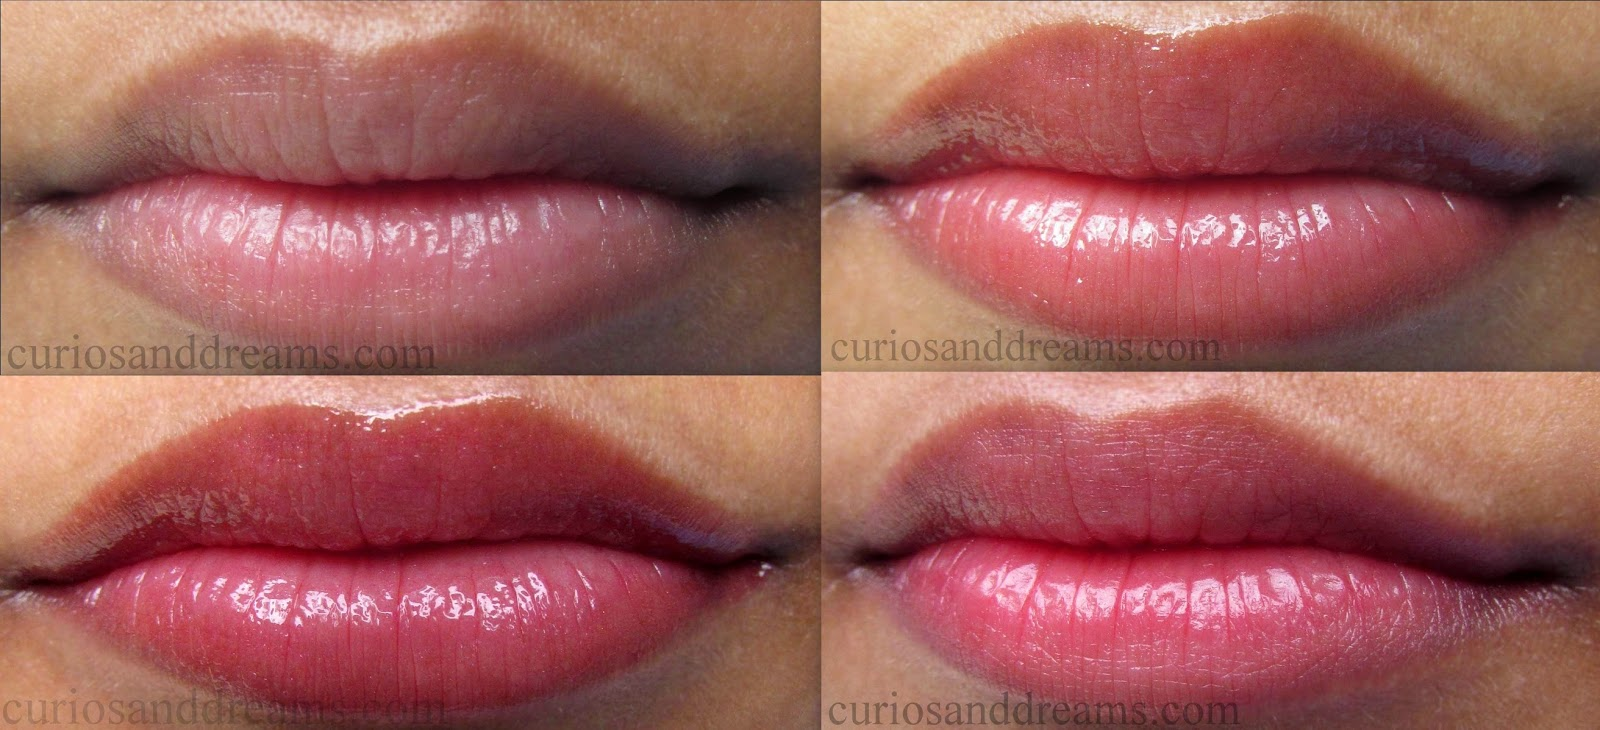 L'Oreal Paris Shine Caresse Lip Color Bella Review, L'Oreal Shine Caresse Lip Color review, L'Oreal Paris Shine Caresse Lip Color Bella swatch